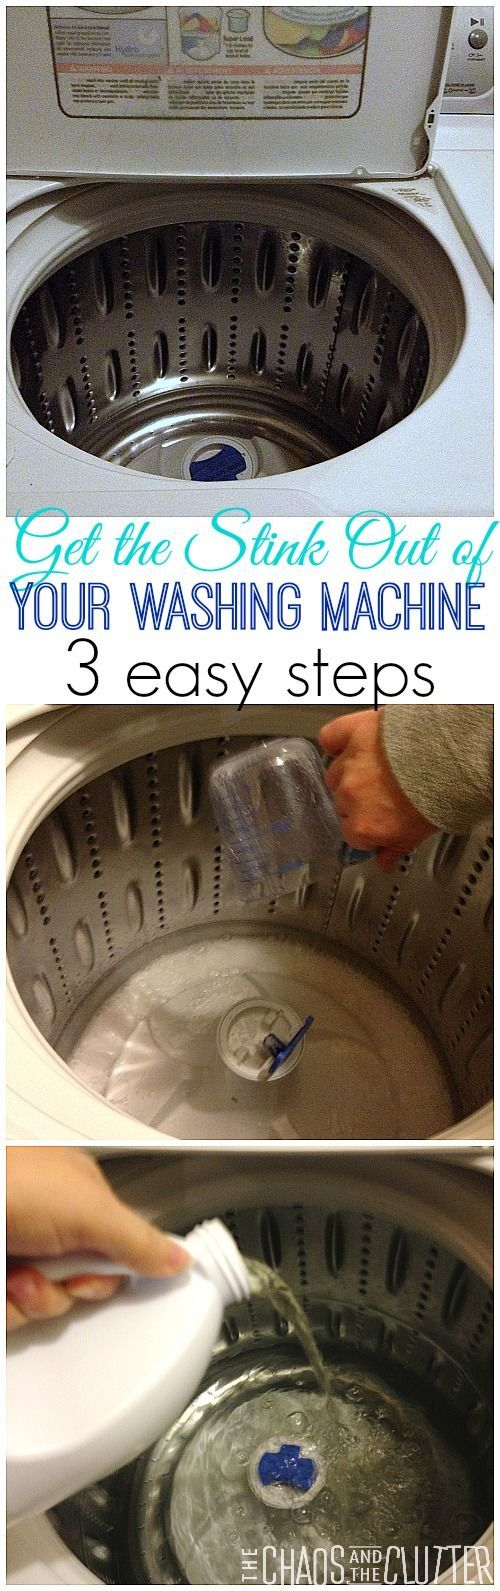 Does your washing machine stink? Get rid of the smell in 3 easy steps.